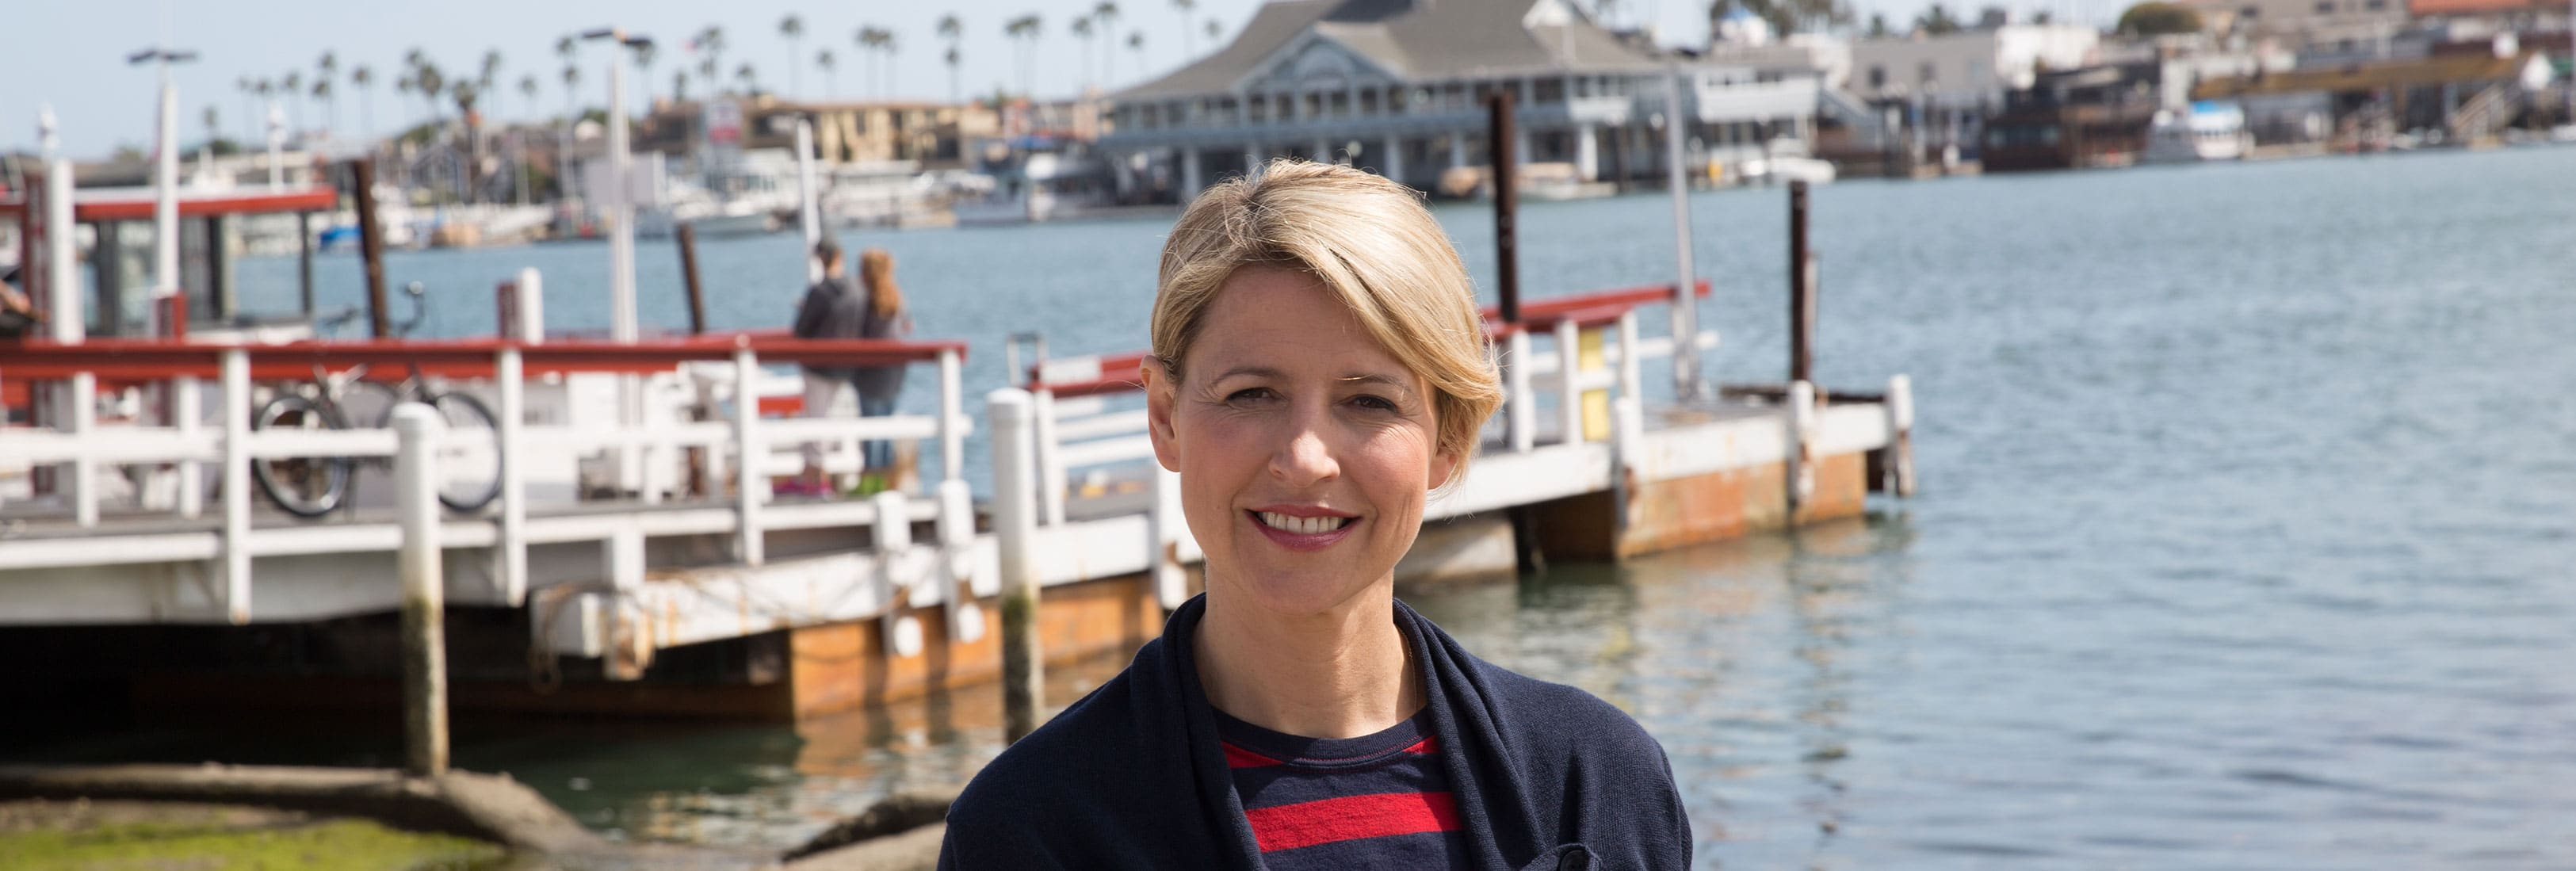 Places to Love - Orange County - Samantha Brown